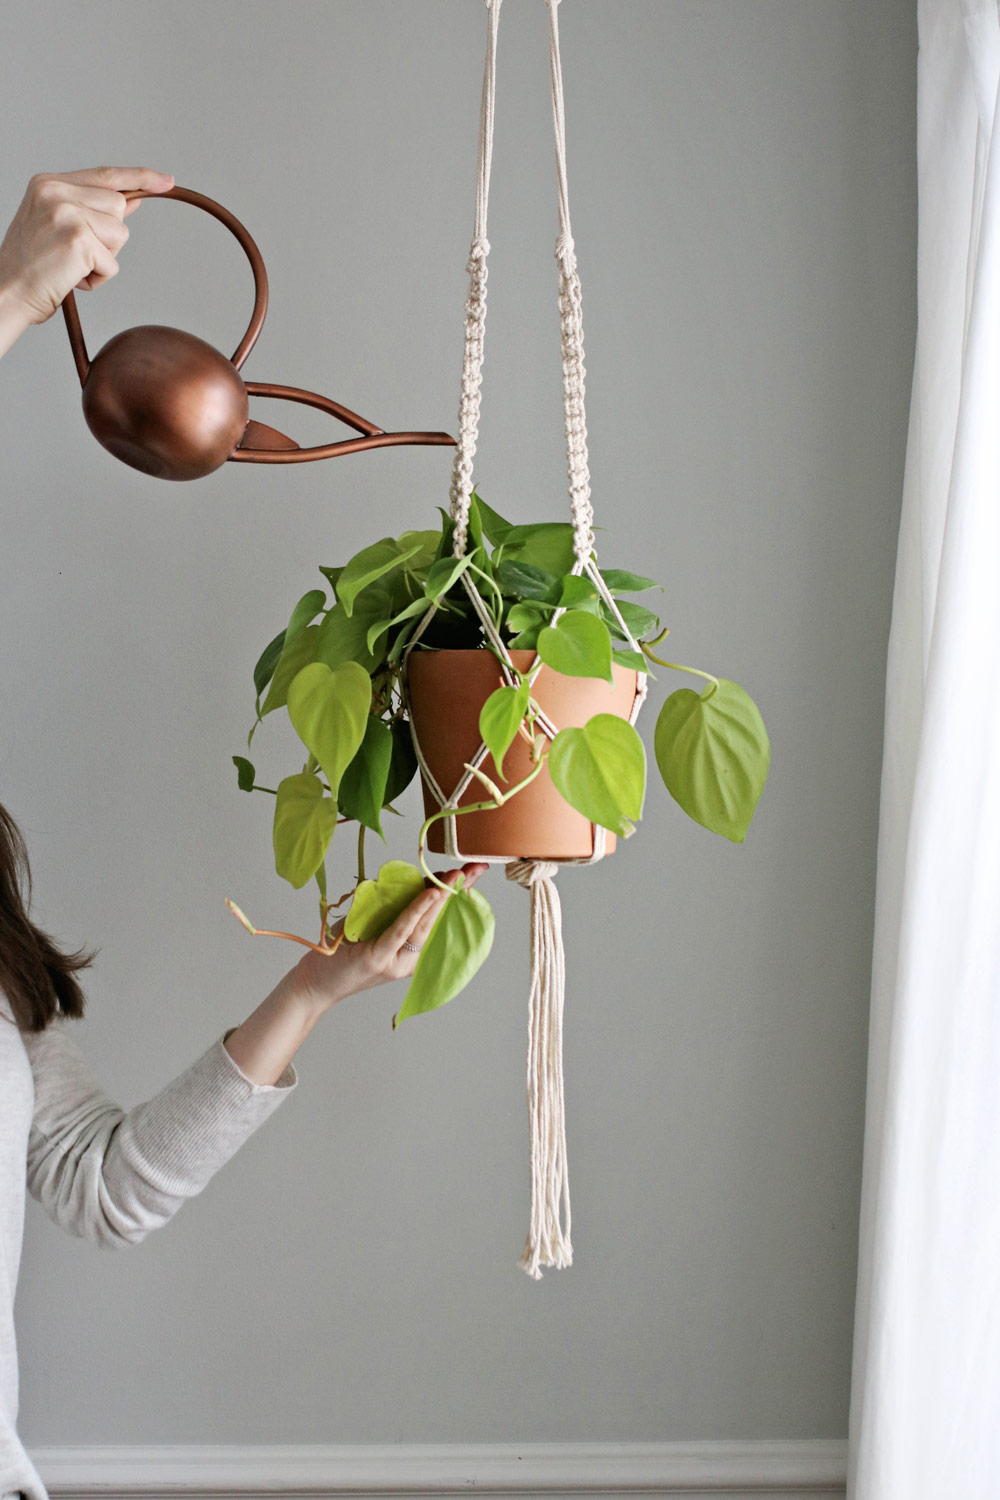 DIY Macrame Plant Hanger from Hello Nest | 7 Hanging Planter DIYs